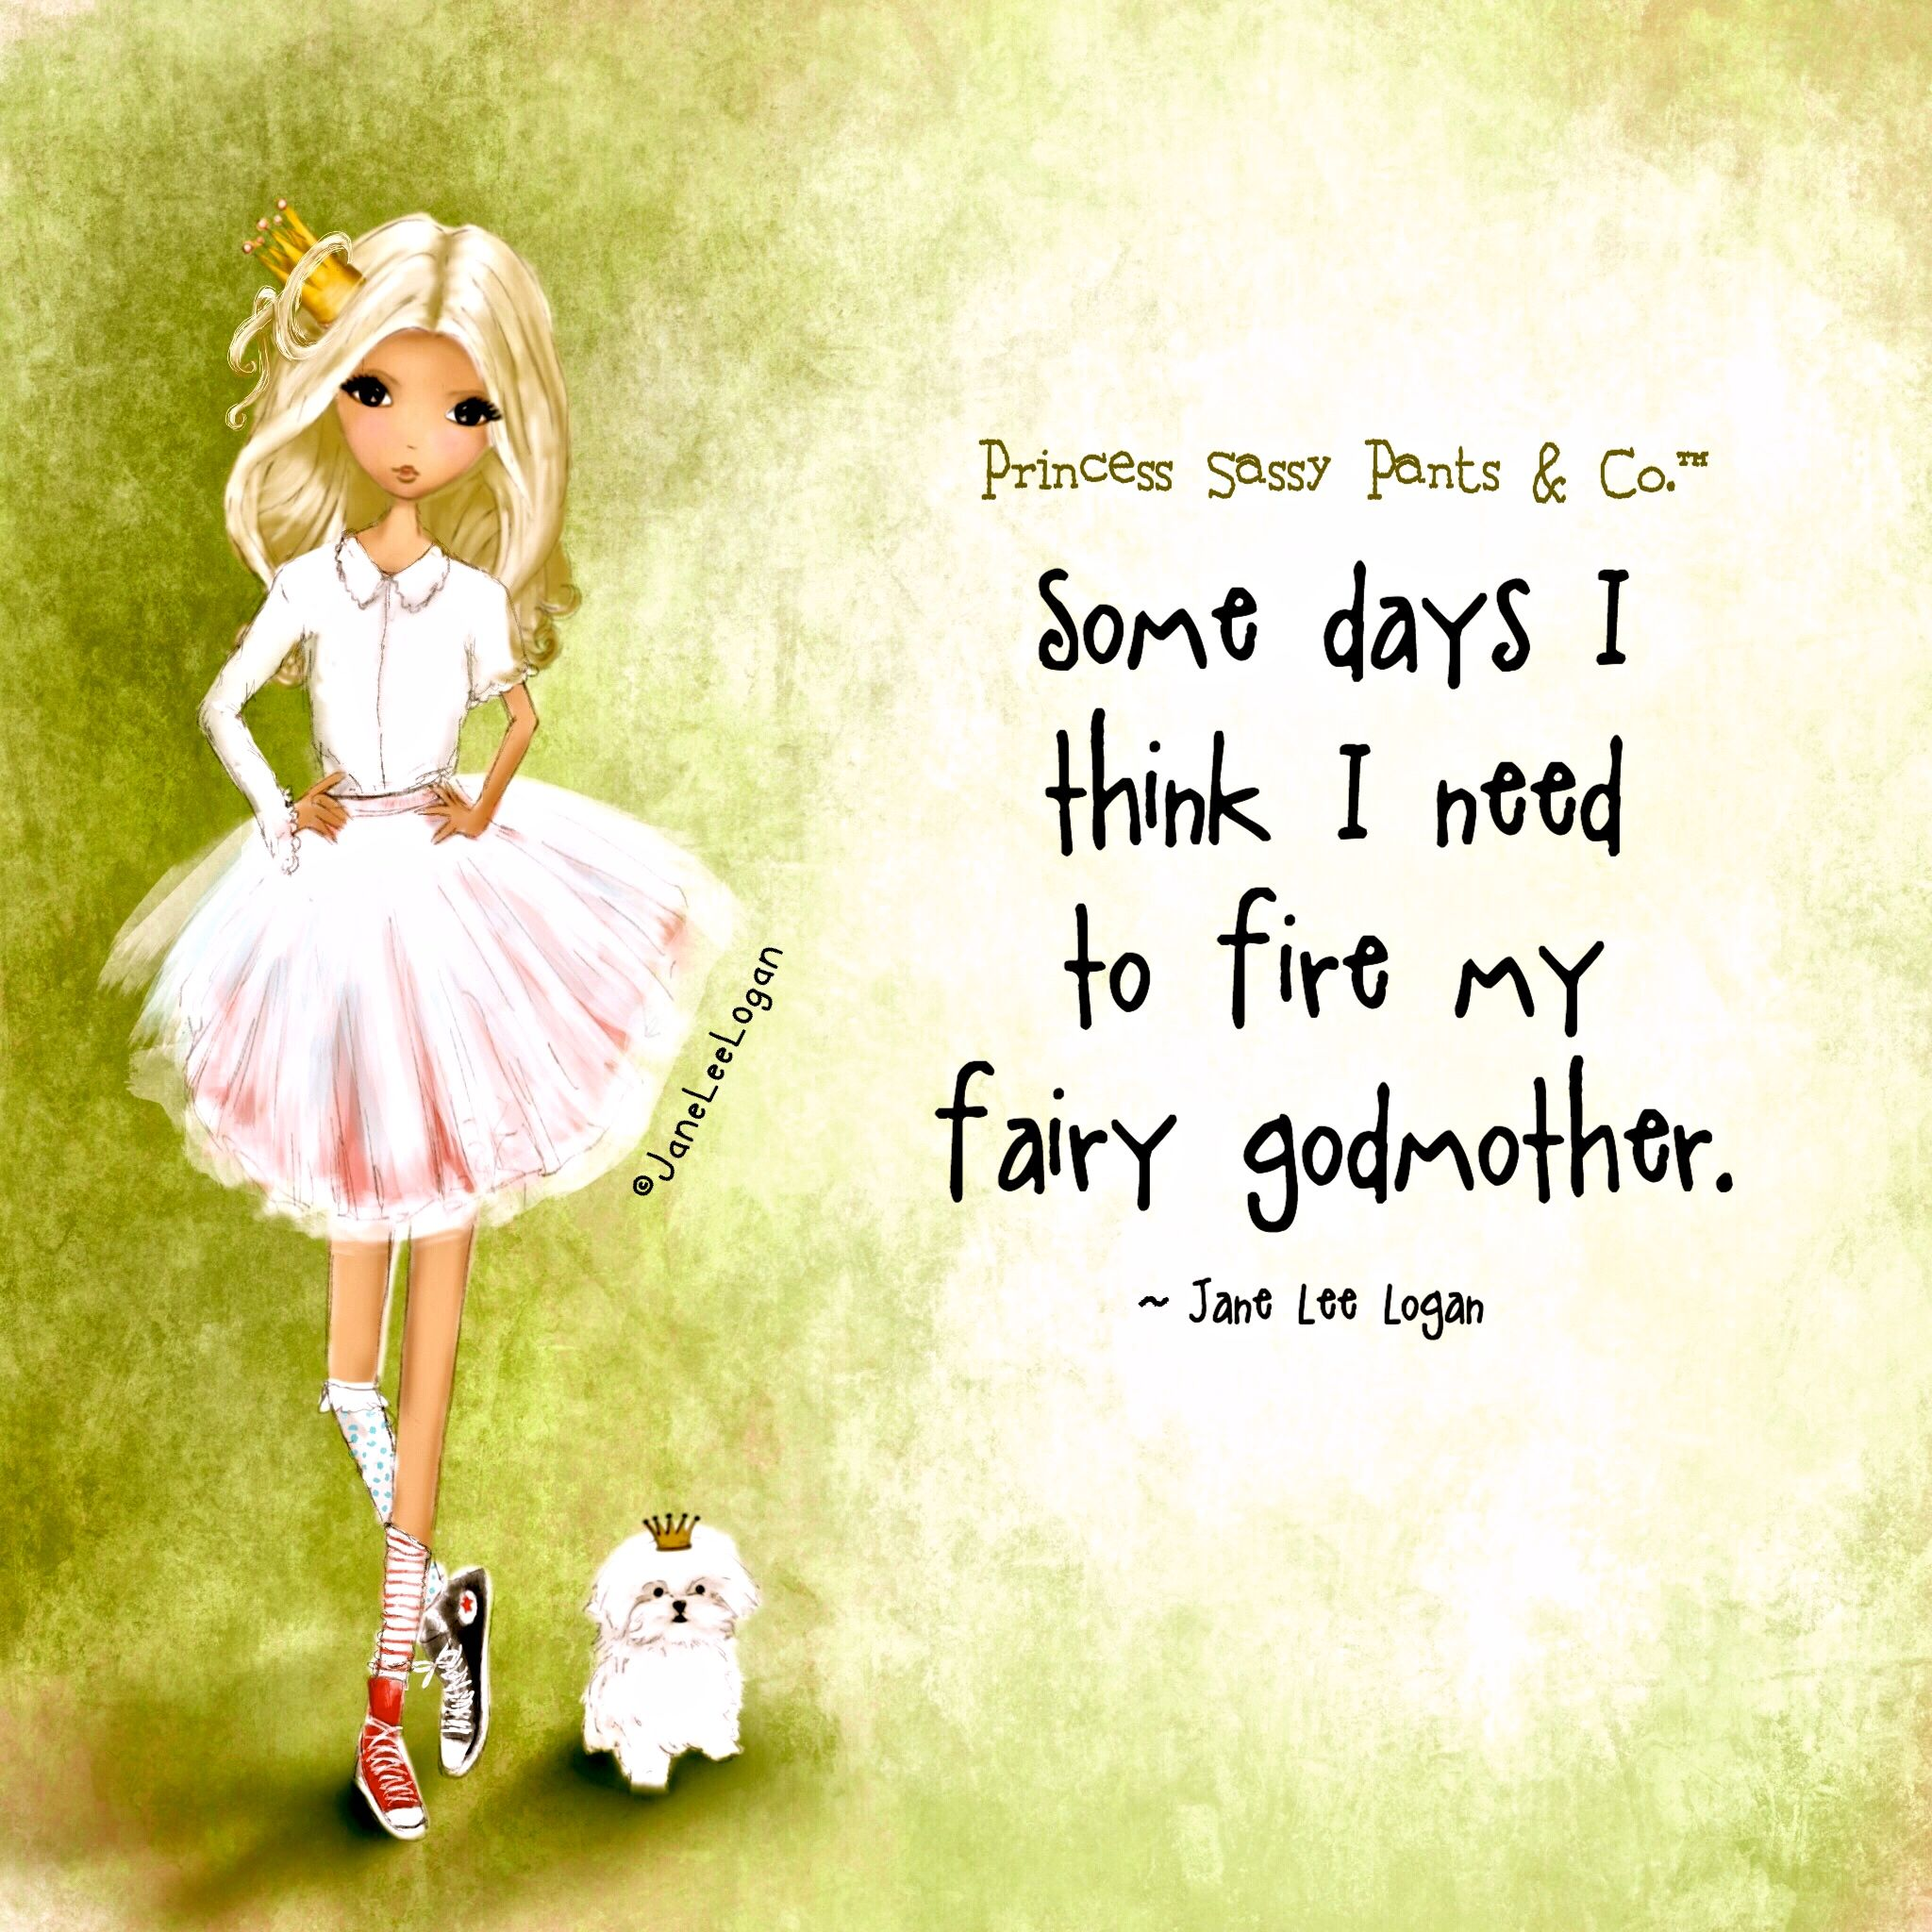 Fairy Godmother Wanted Sassy Pants Godmother Quotes Funny